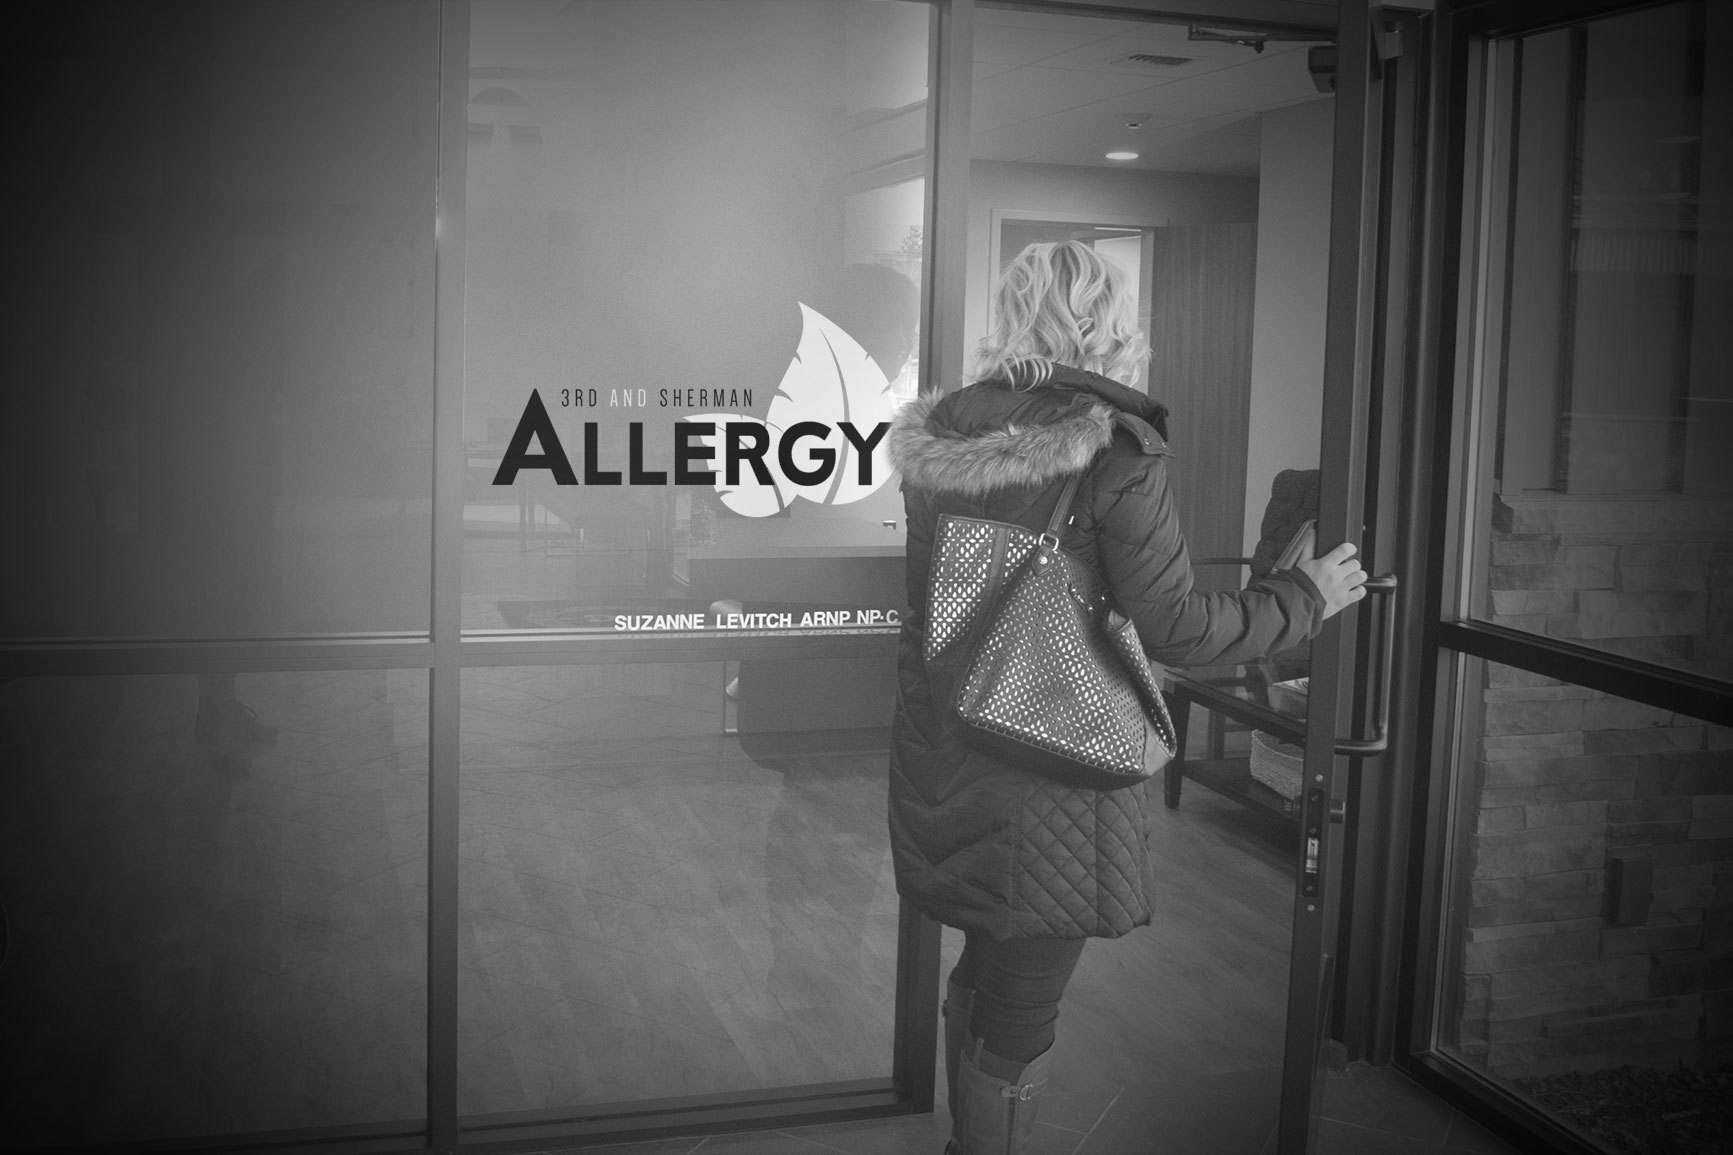 A patient enters 3rd and Sherman Allergy in Spokane, WA